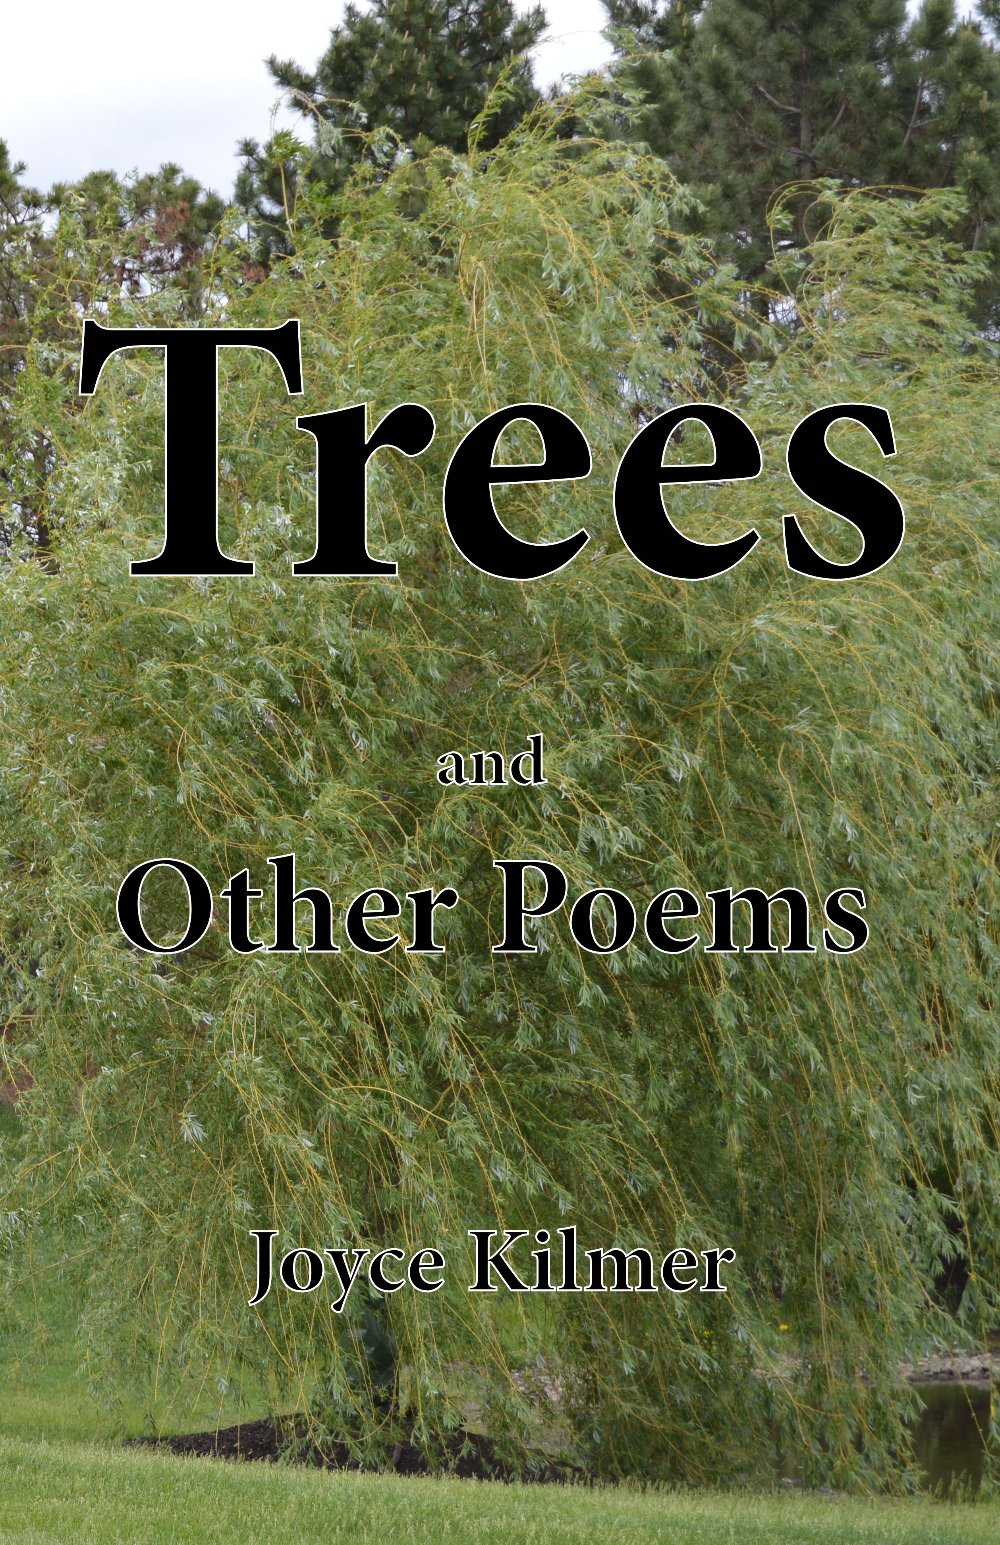 Trees and Other Poems (Mobi)